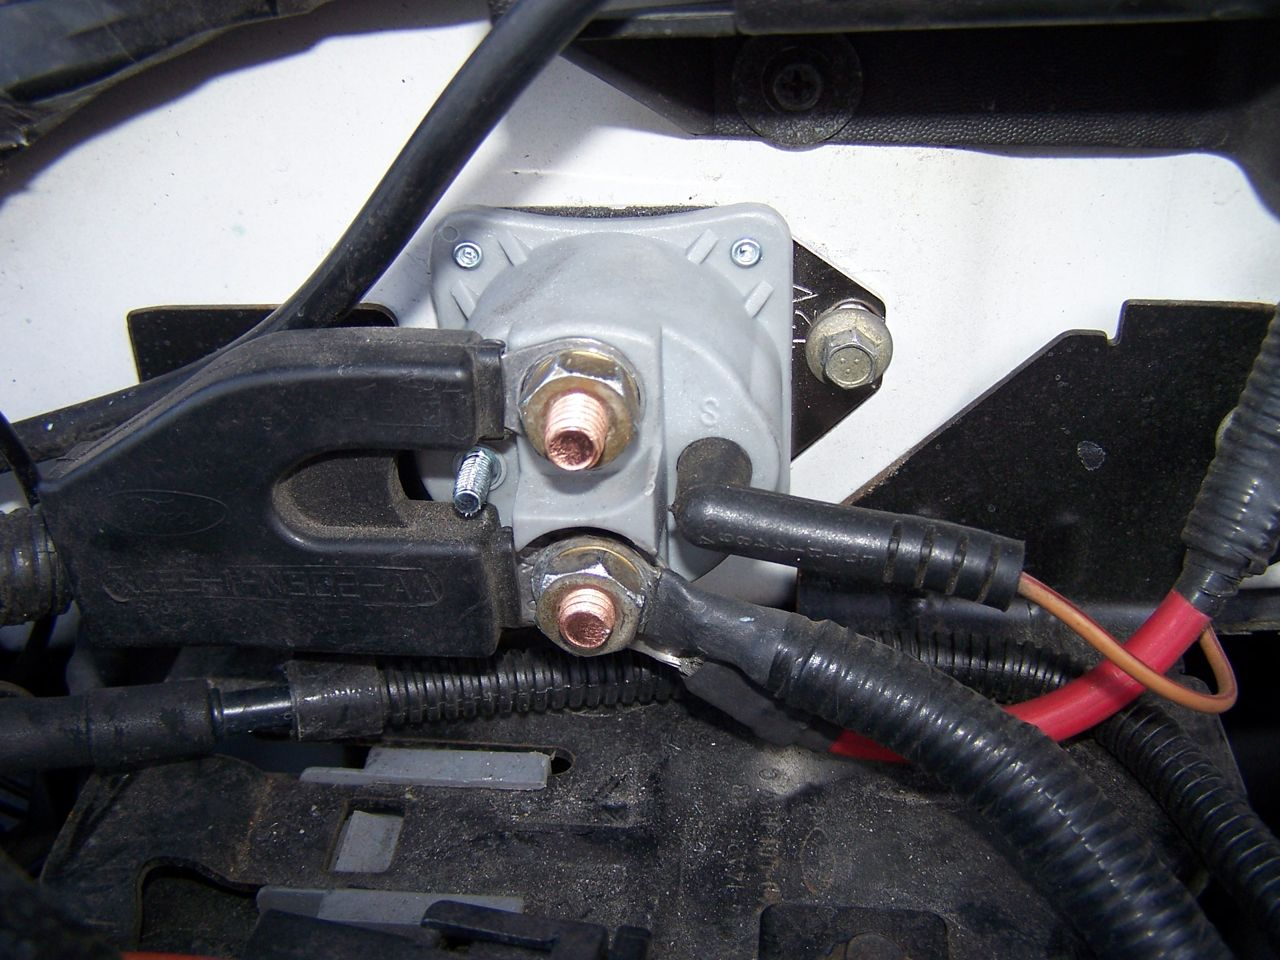 2009 12 03_193624_100_2918 i am looking for a diagram on the wiring of a 2001 ford expedition 2004 ford f150 starter solenoid wiring diagram at alyssarenee.co